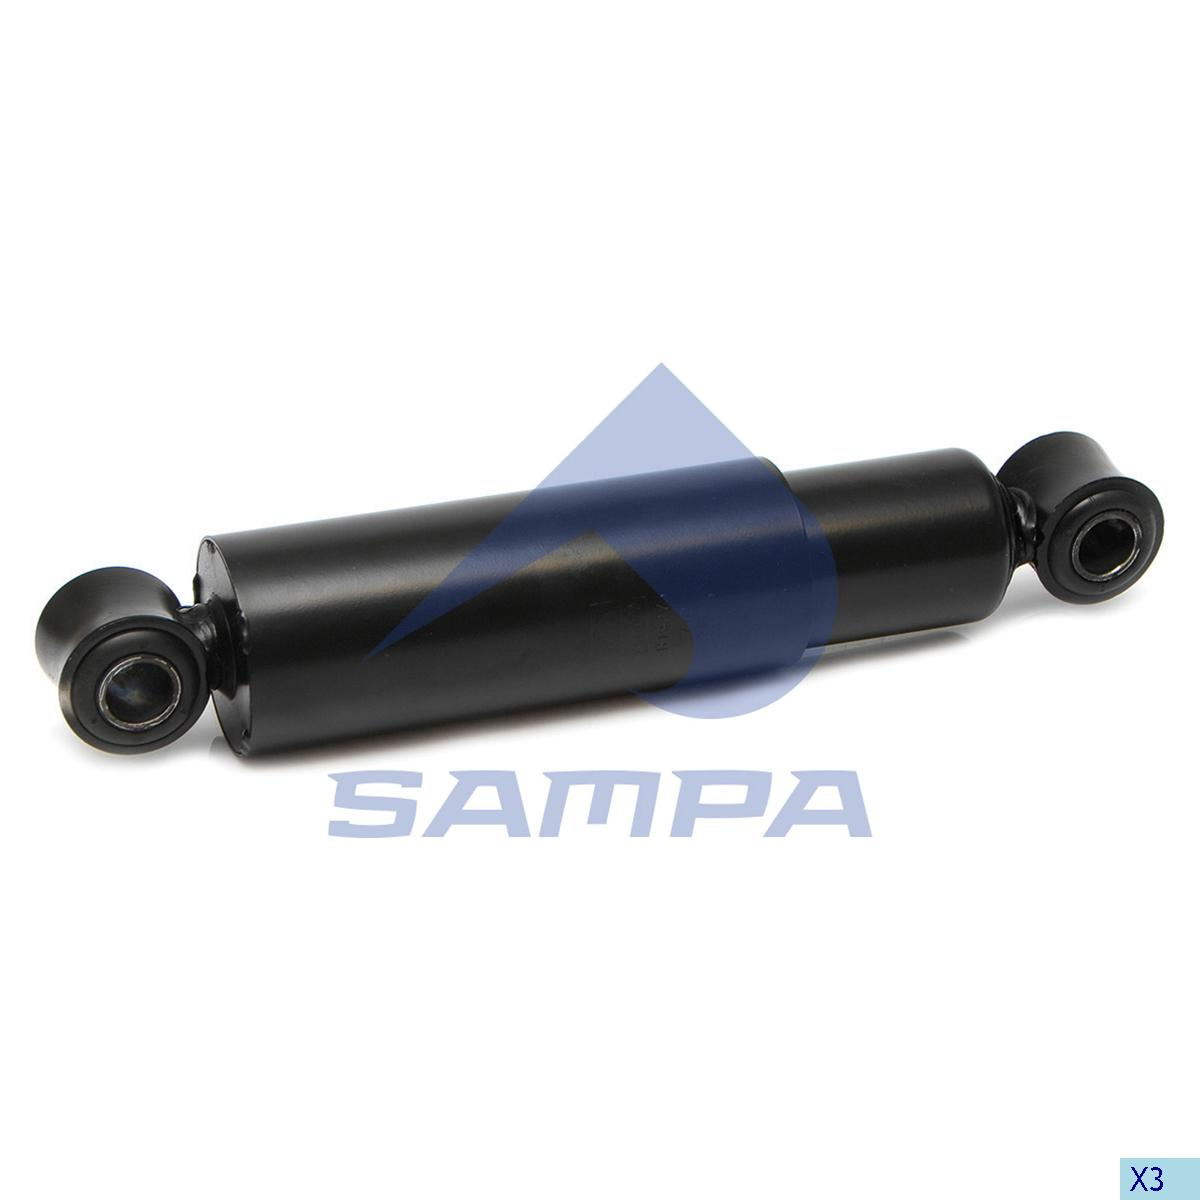 Shock Absorber, Bergische, Suspension